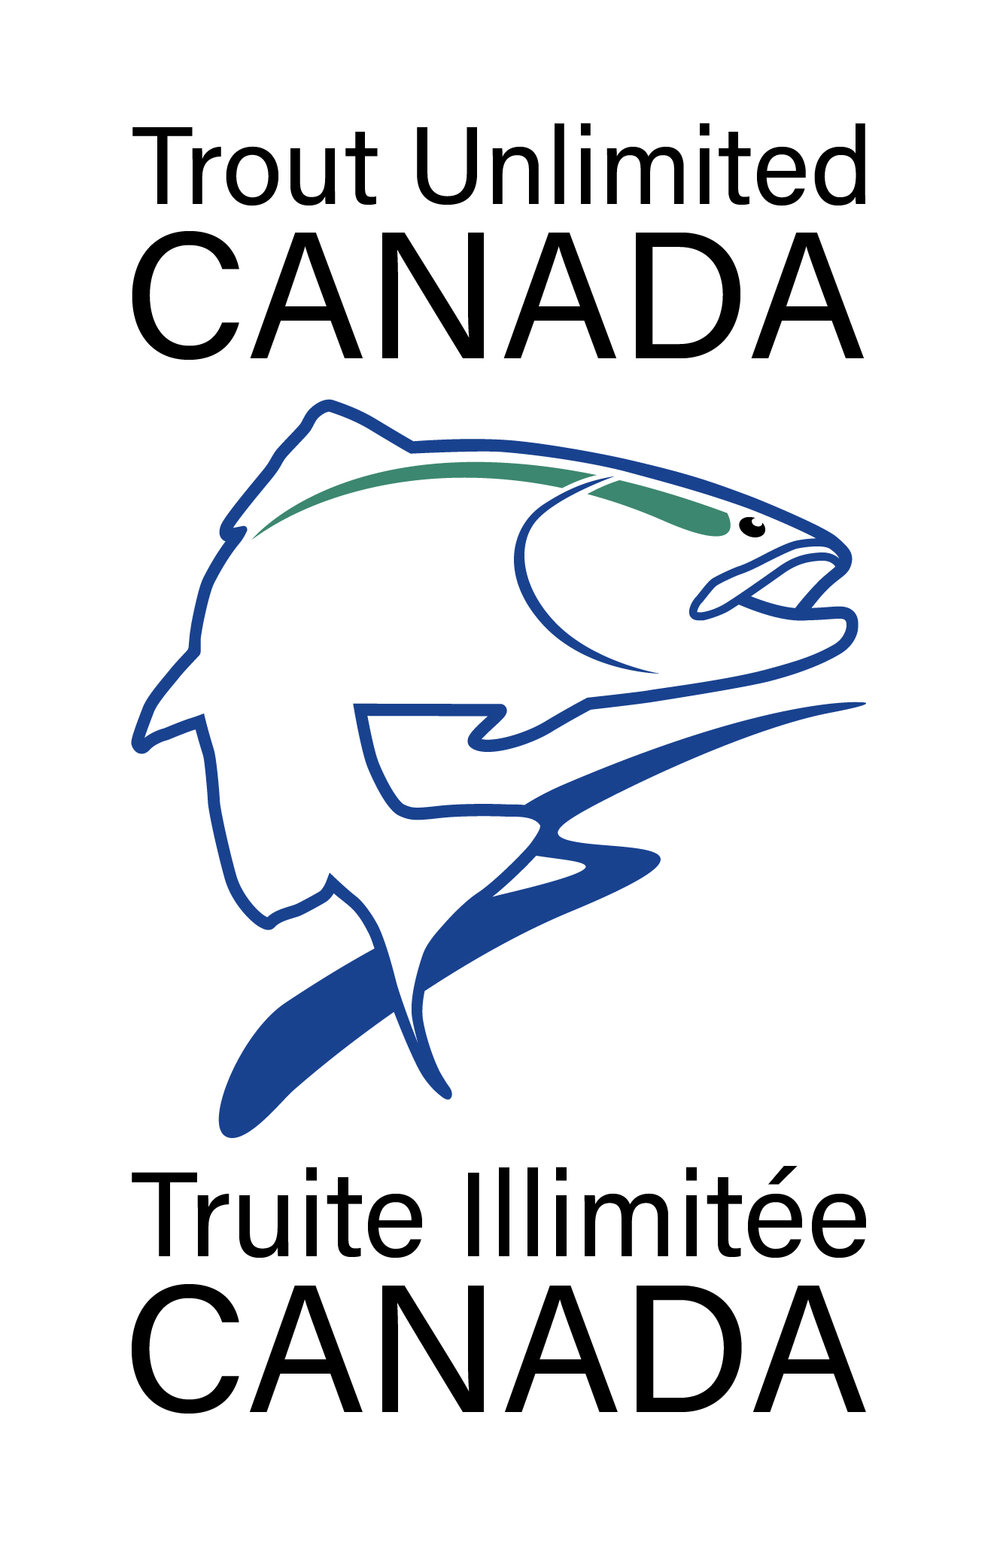 Trout-Unlimited-Canada-LogoVertical.jpg